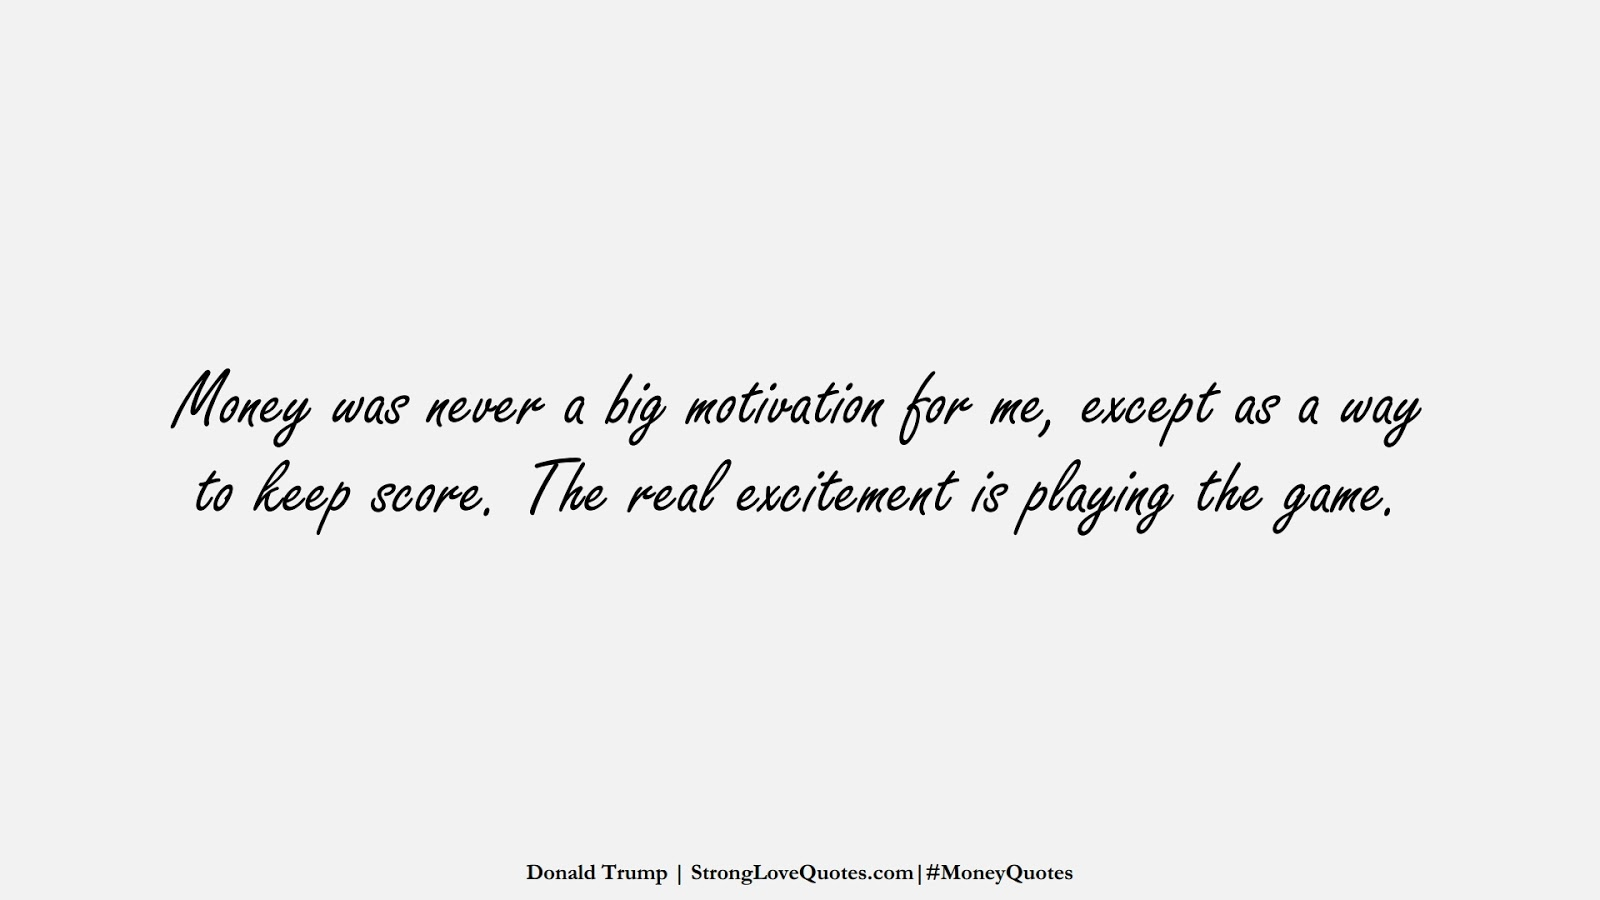 Money was never a big motivation for me, except as a way to keep score. The real excitement is playing the game. (Donald Trump);  #MoneyQuotes